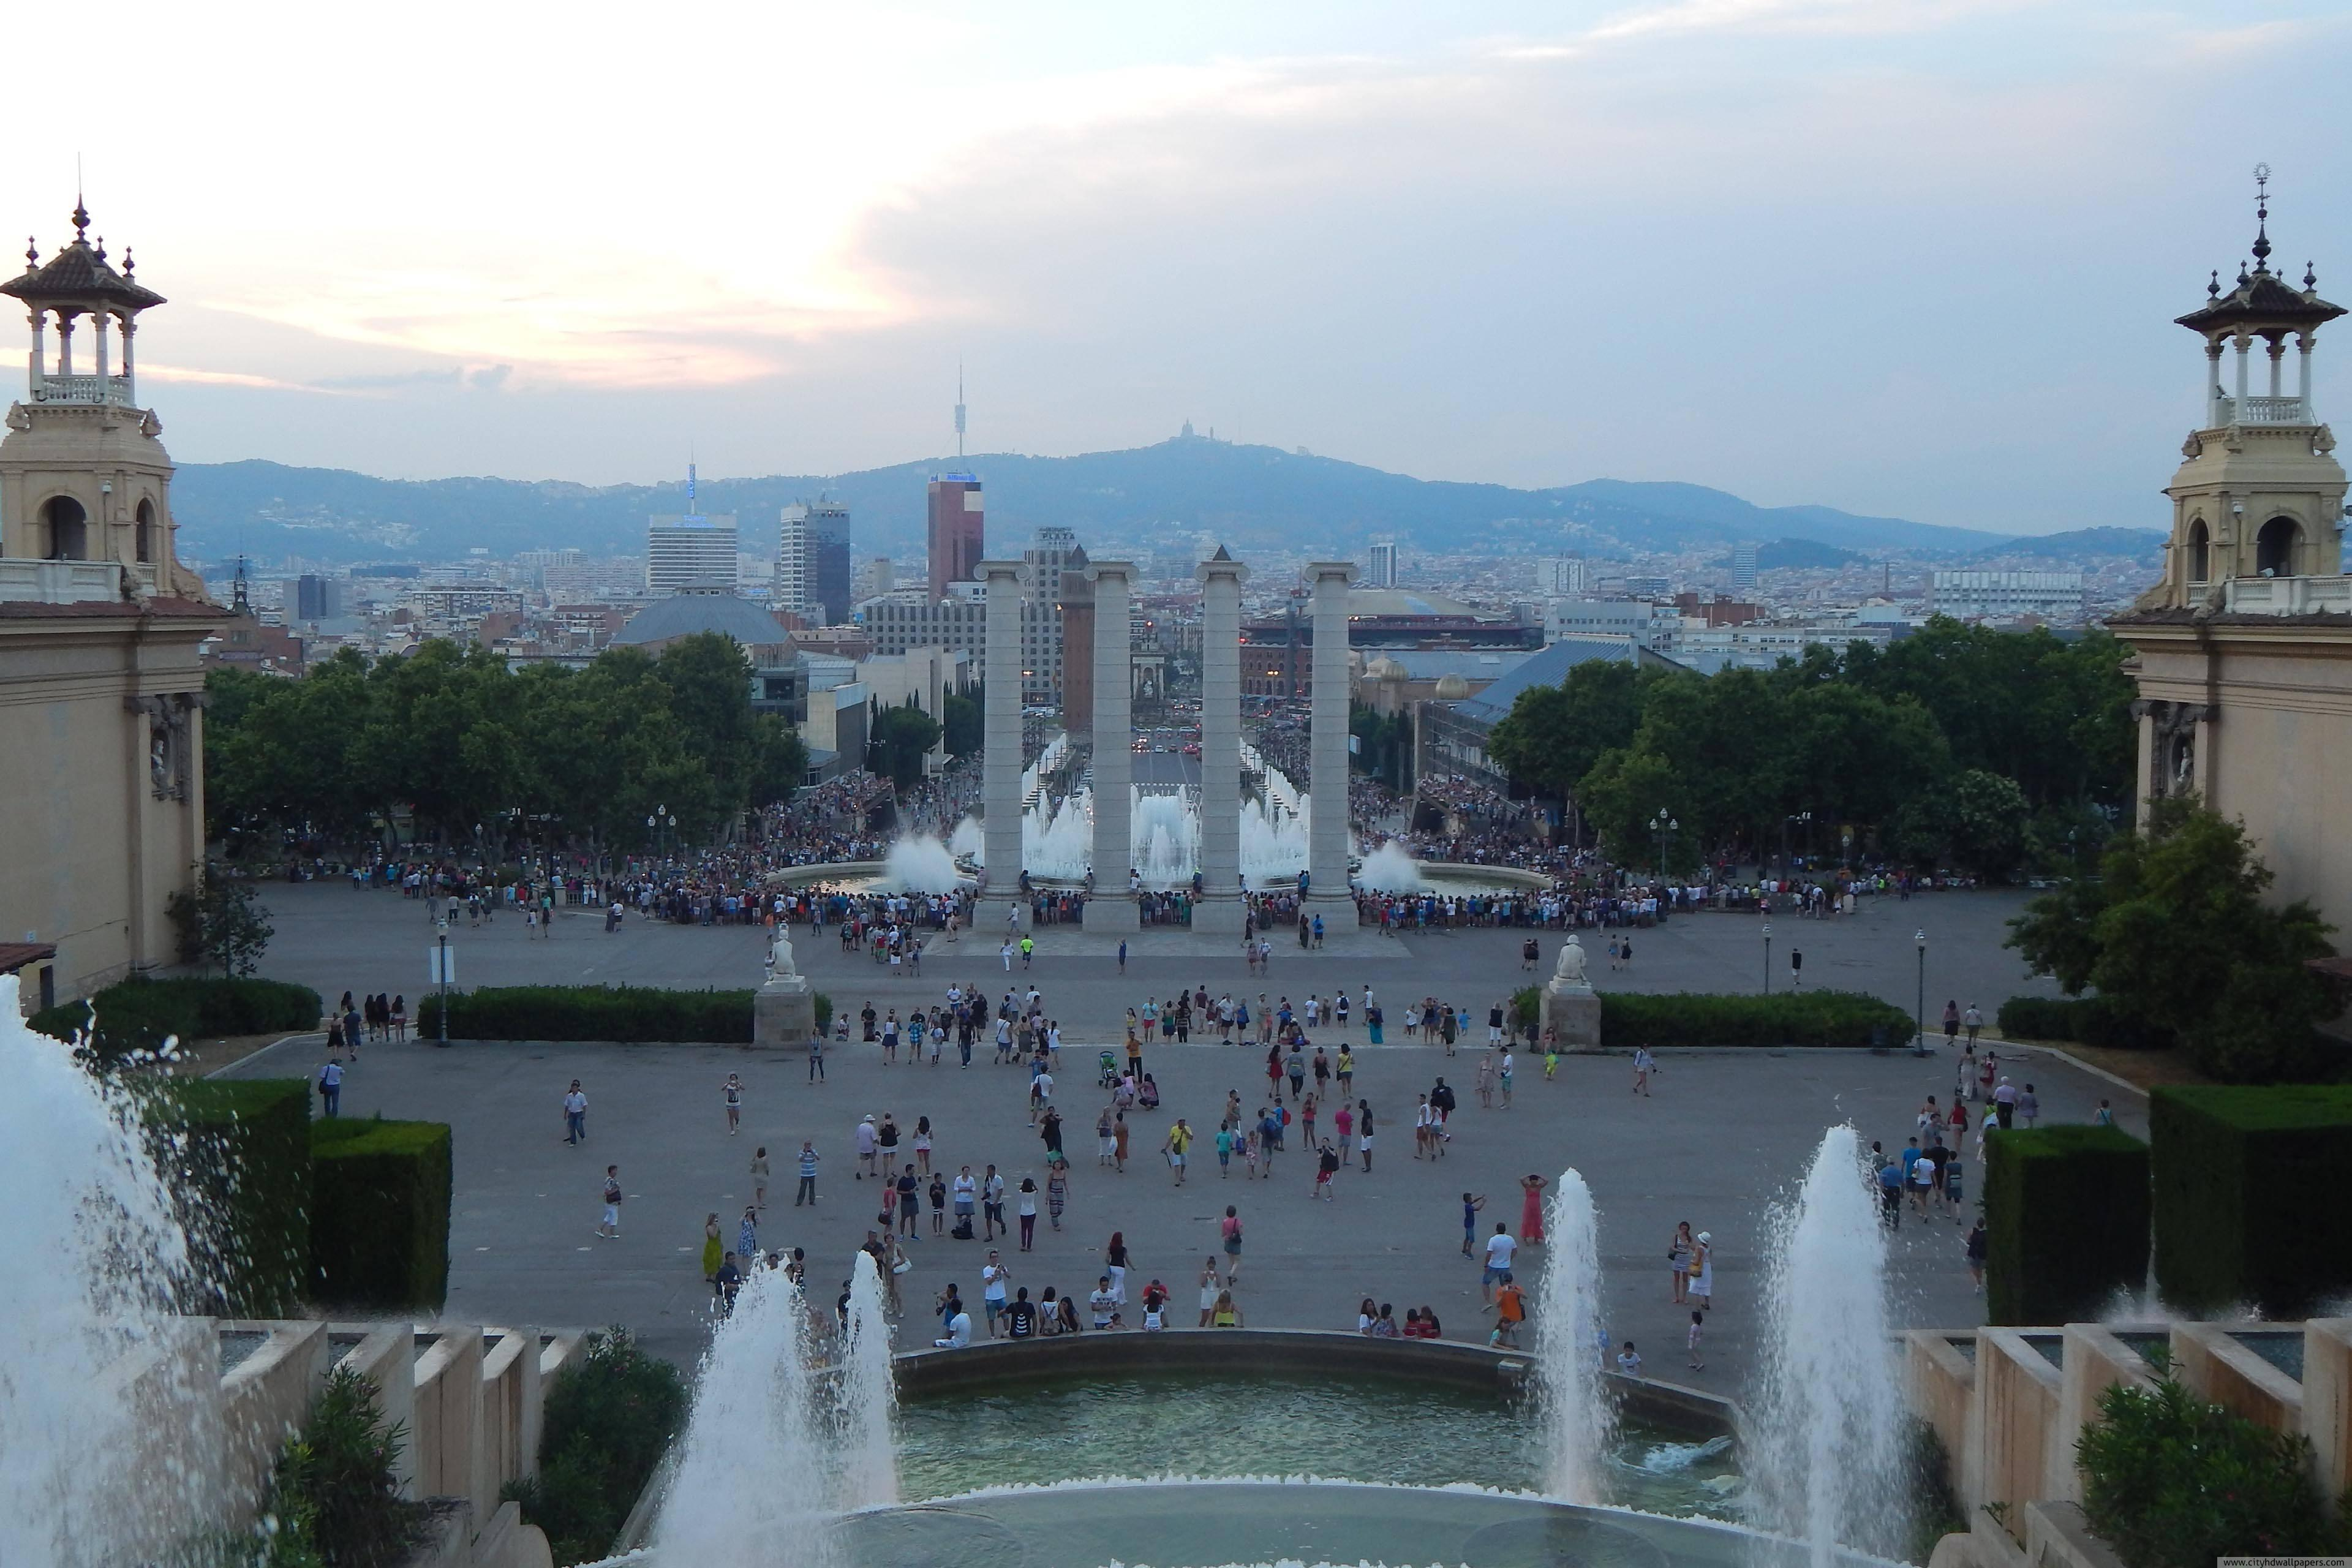 Tourists and large plaza fountain in Barcelona city | city wallpaper